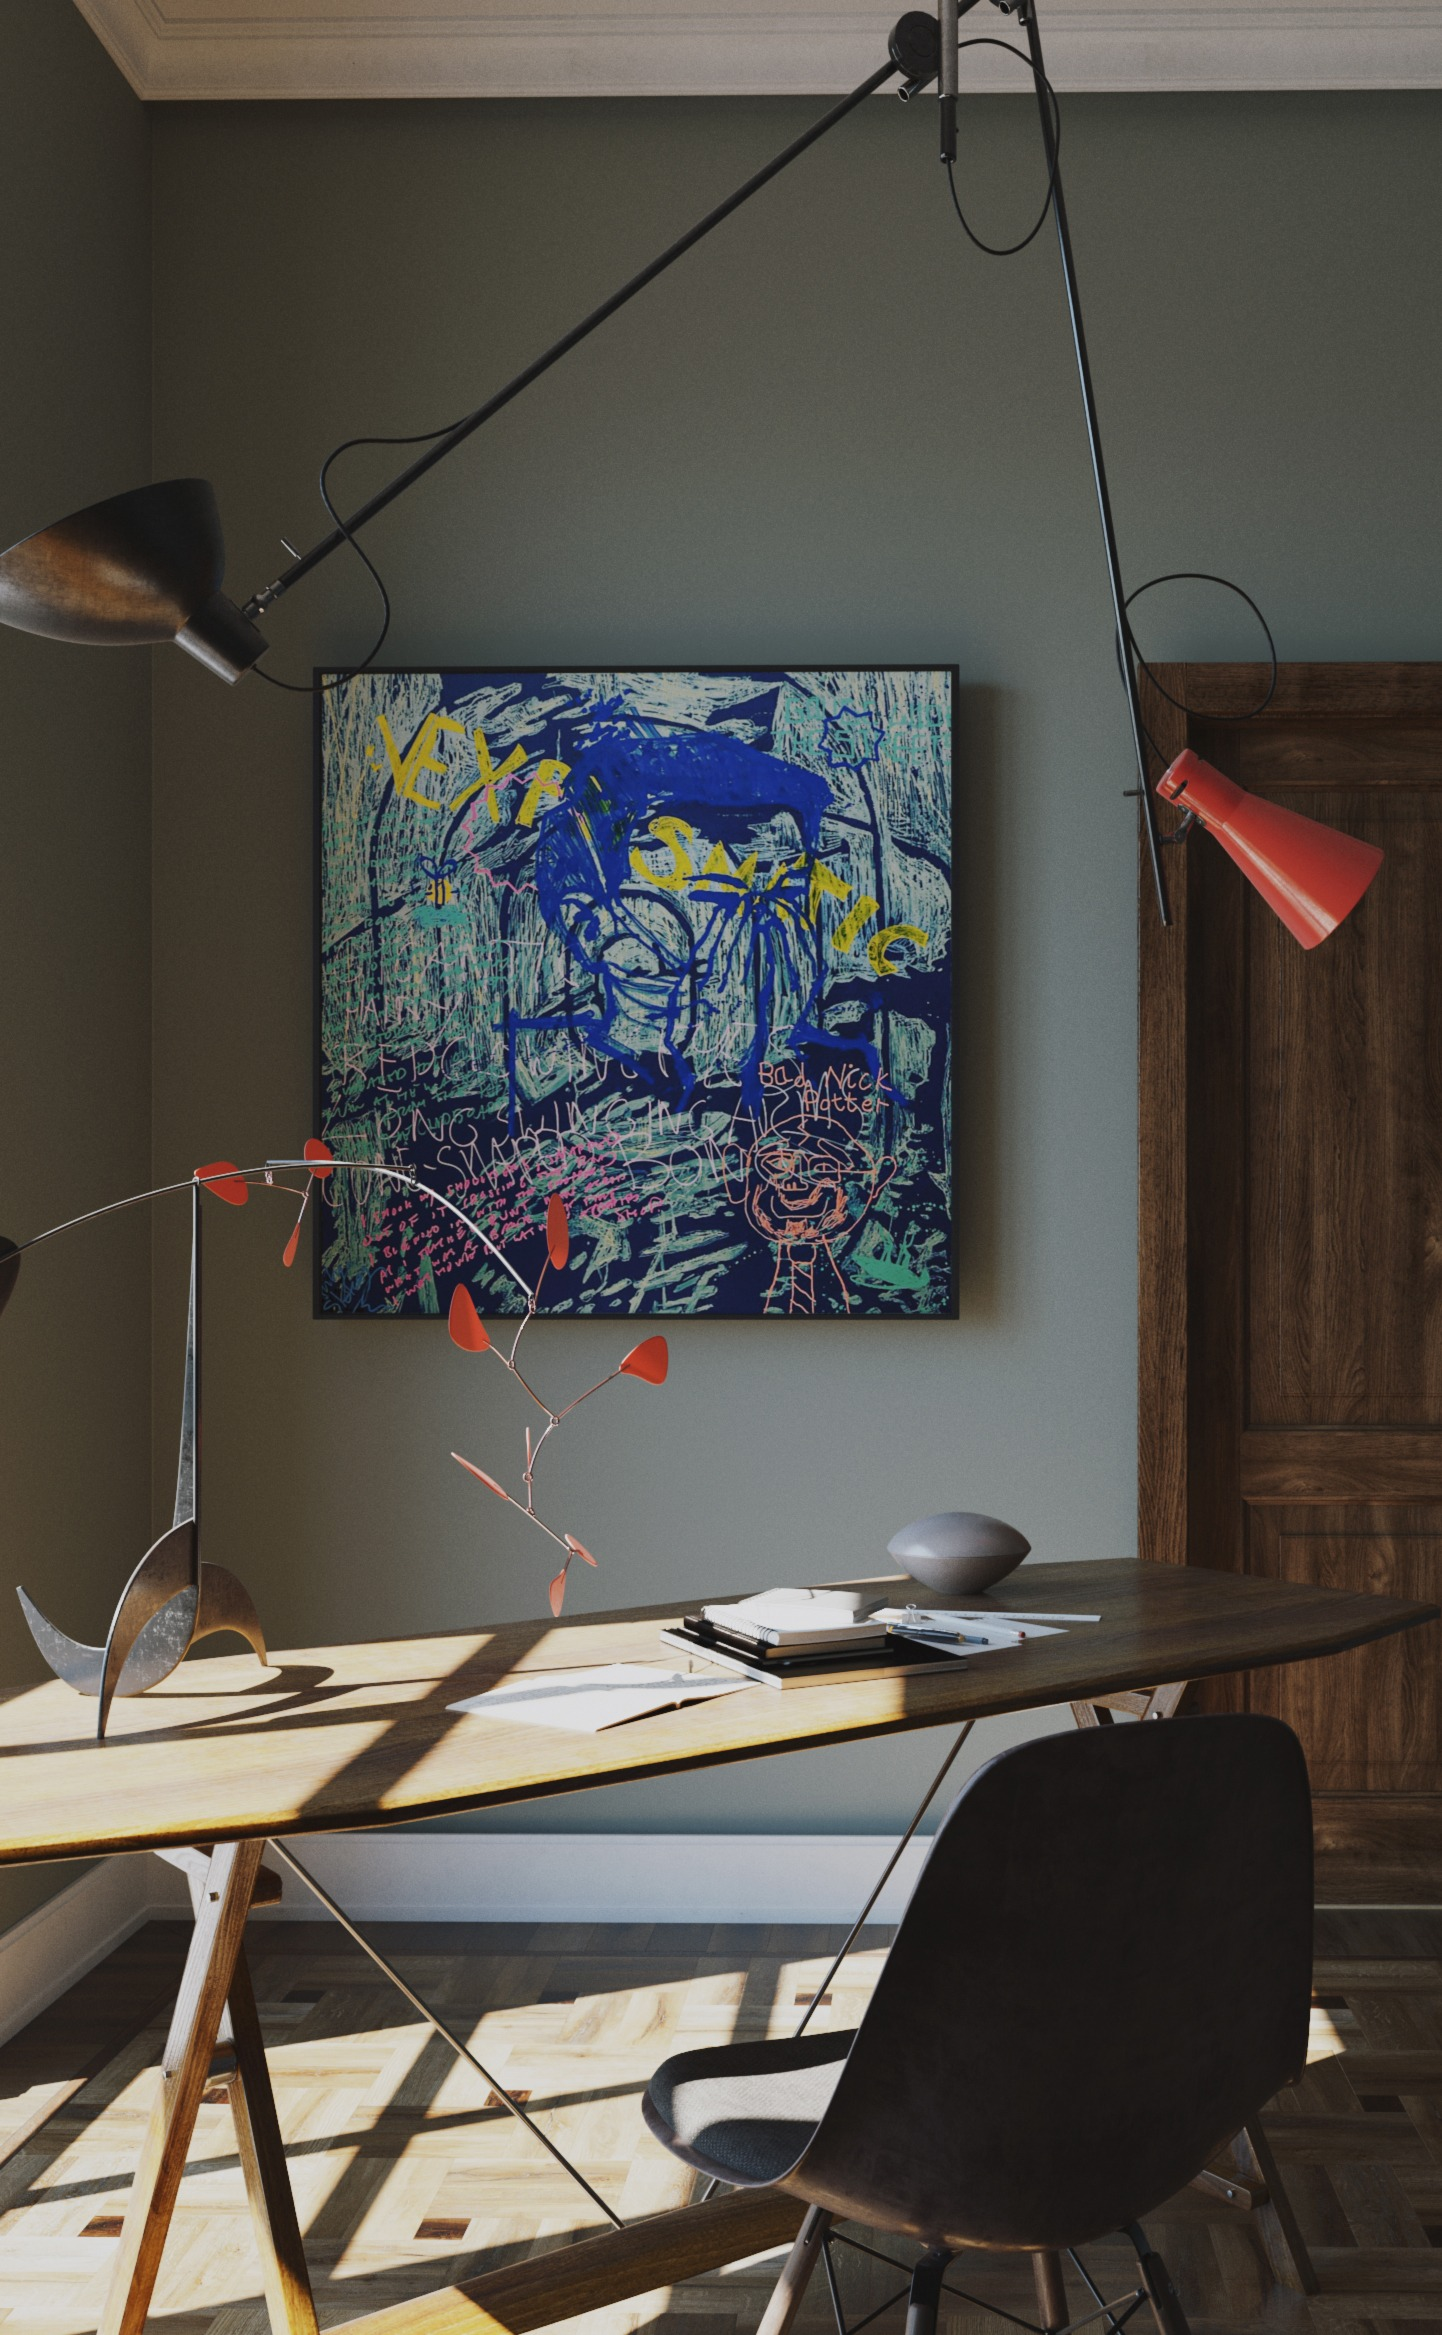 Nicolas-Ruston-Artwork-in-situ-We-really-all-were-very-happy-for-a-while